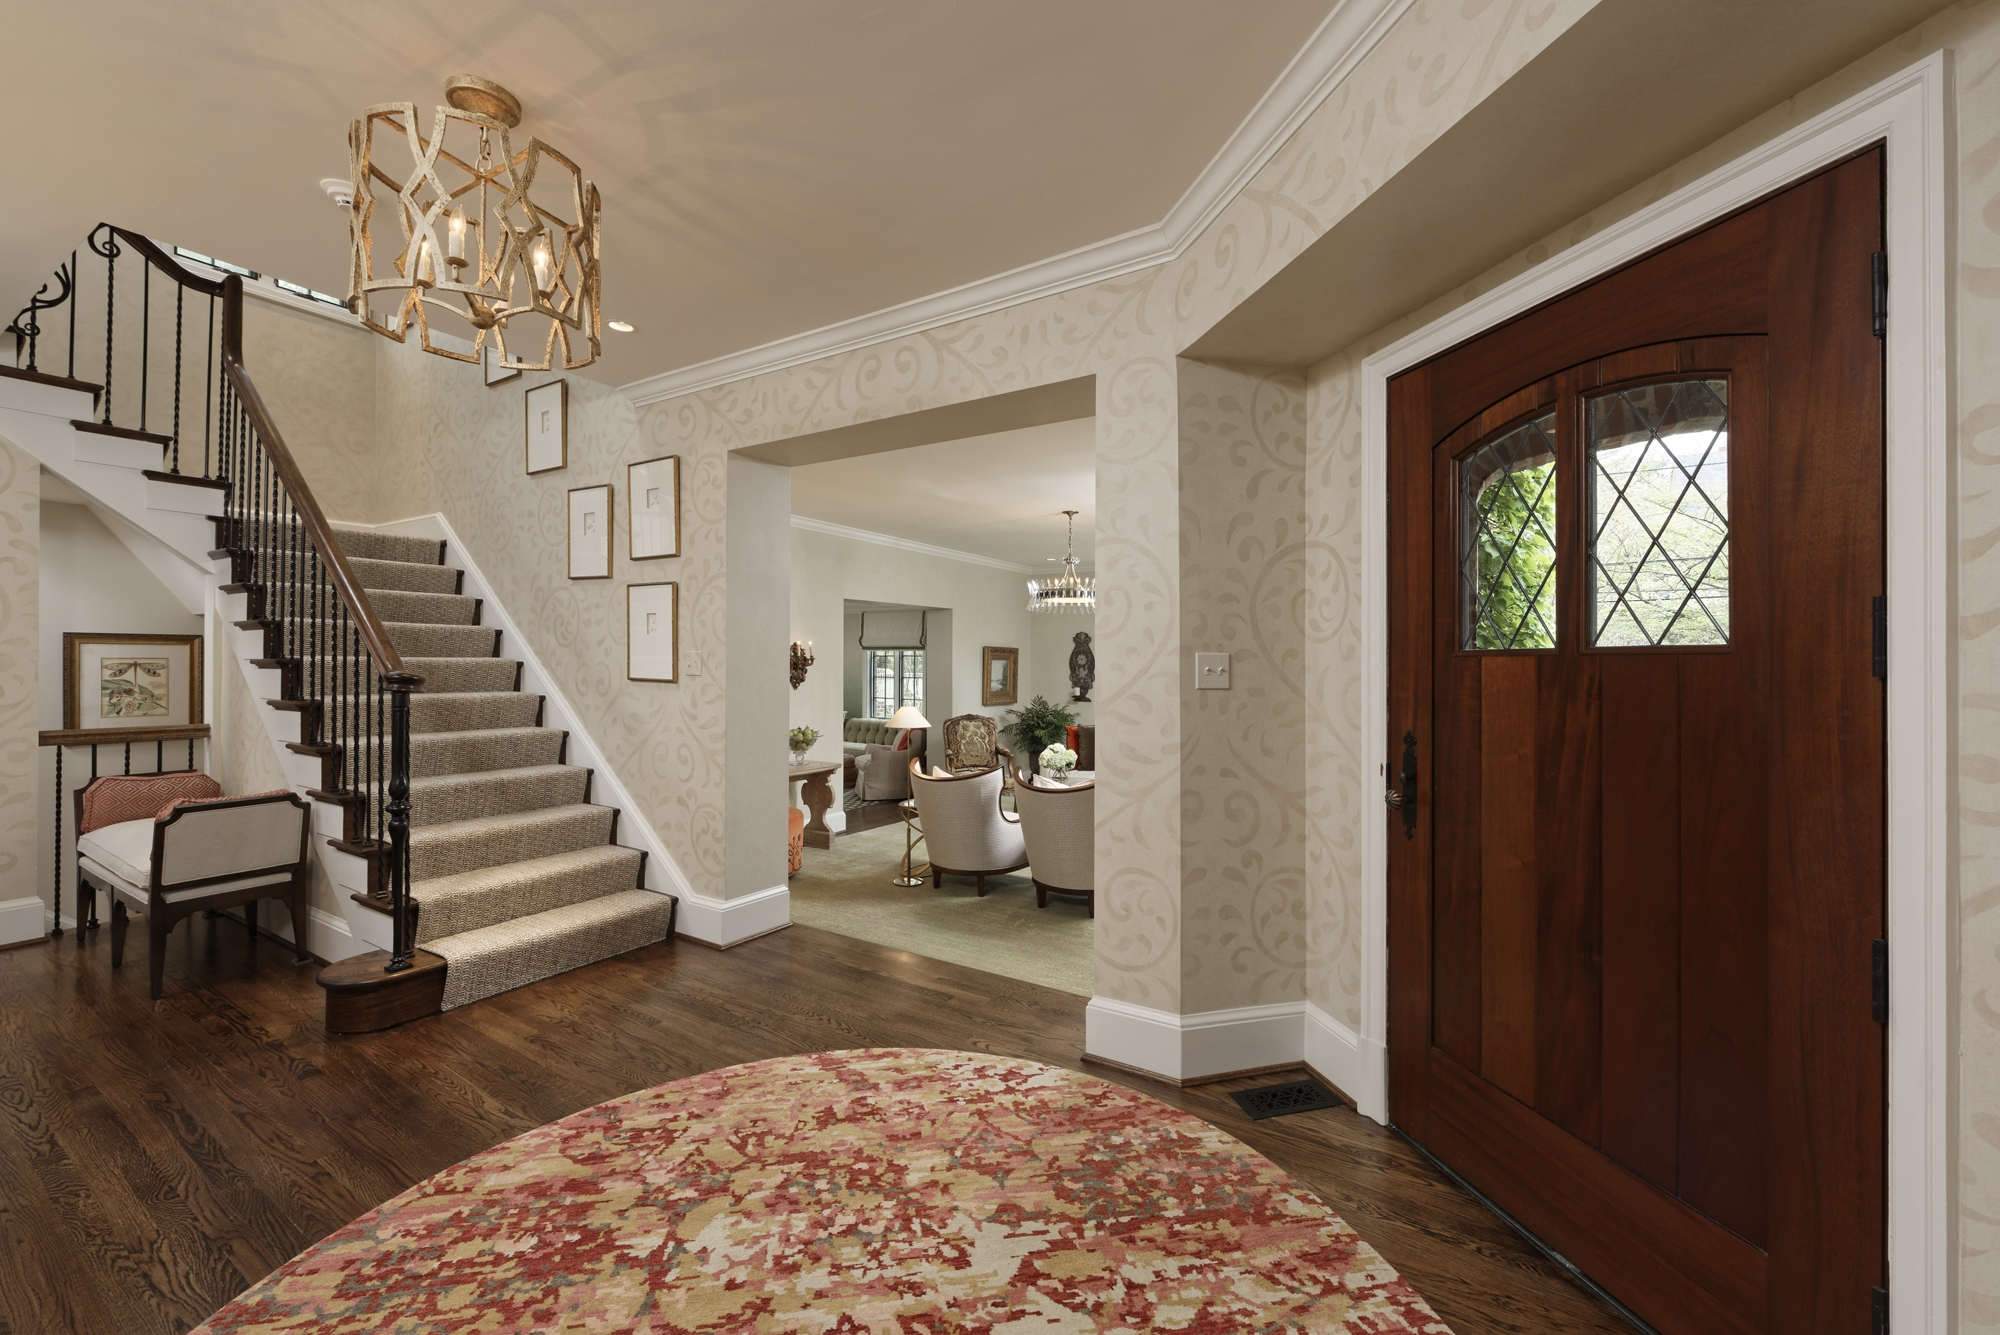 Family Foyers Entryways Stairs Photo Gallery Bowa Design | Stairs In Home Design | Wall | Luxury | Creative | Home Out | Ultra Modern